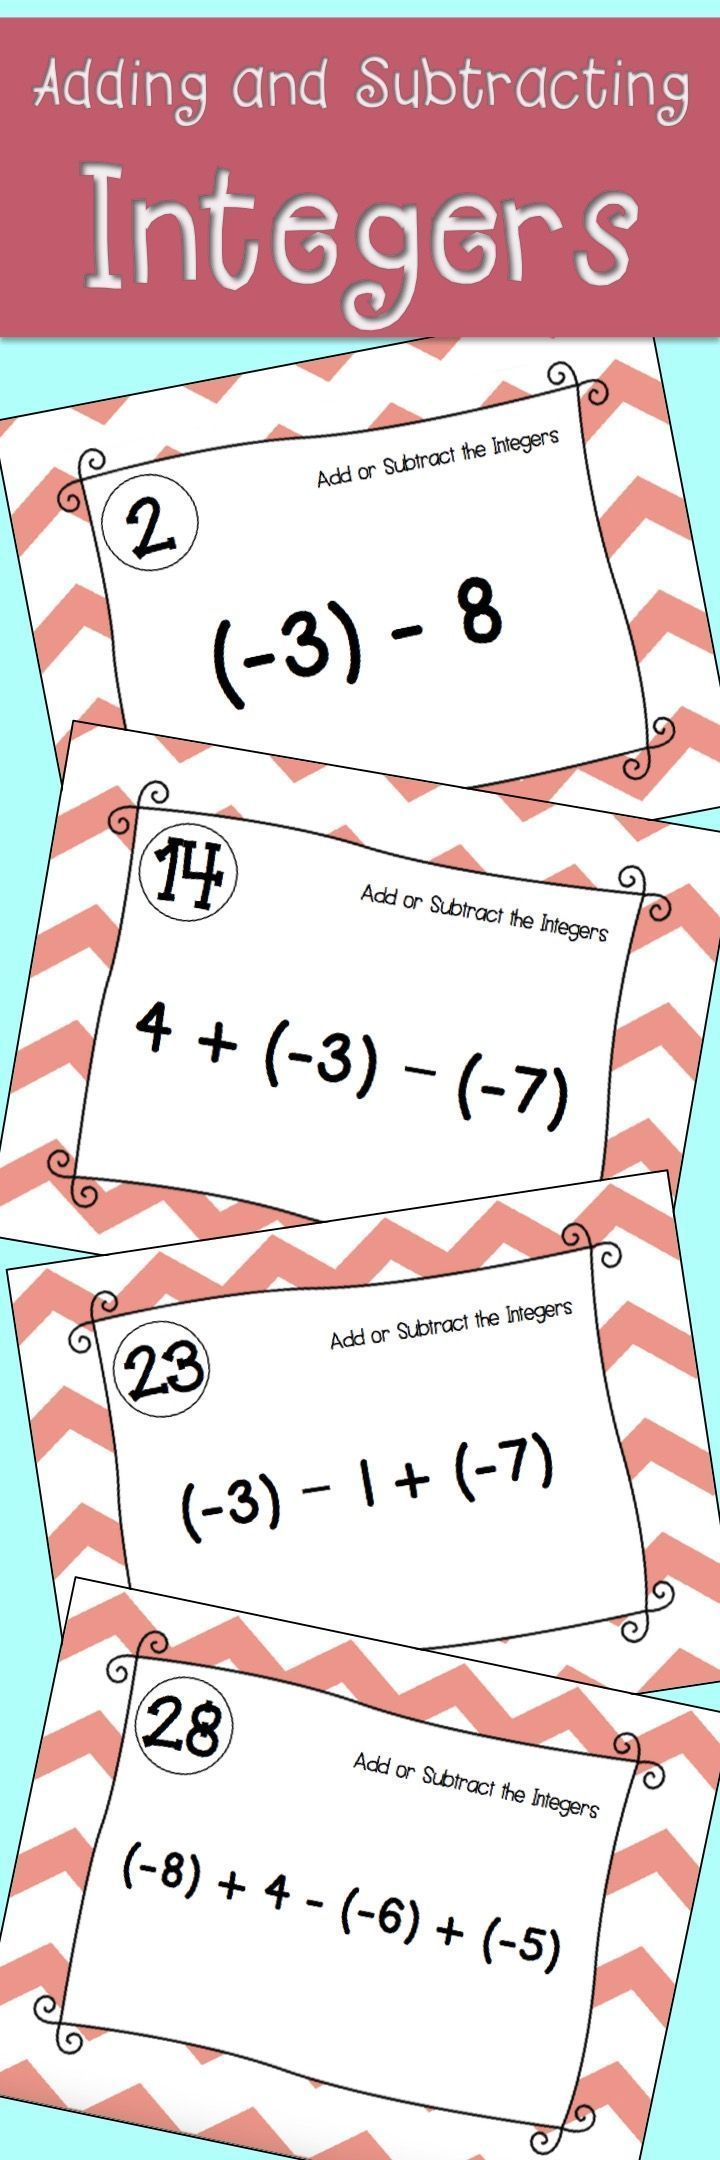 Adding and Subtracting Integers Task Cards. Algebra or Pre-Algebra activity.